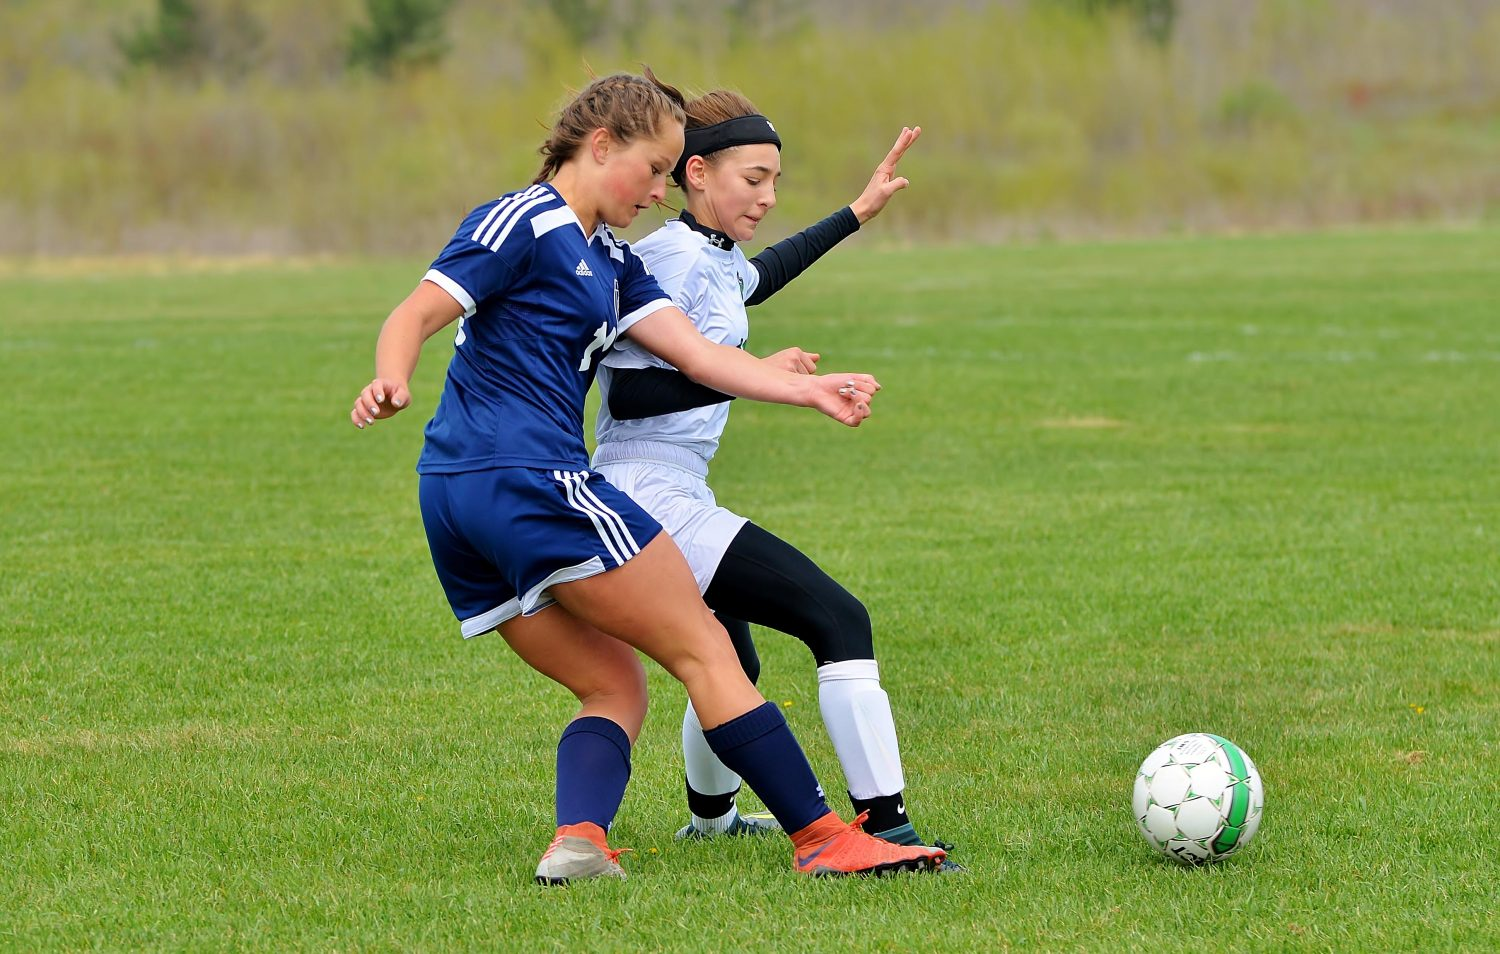 At right, the Hodags' Kenedy Van Zile battles for the ball Saturday against Wausau West.